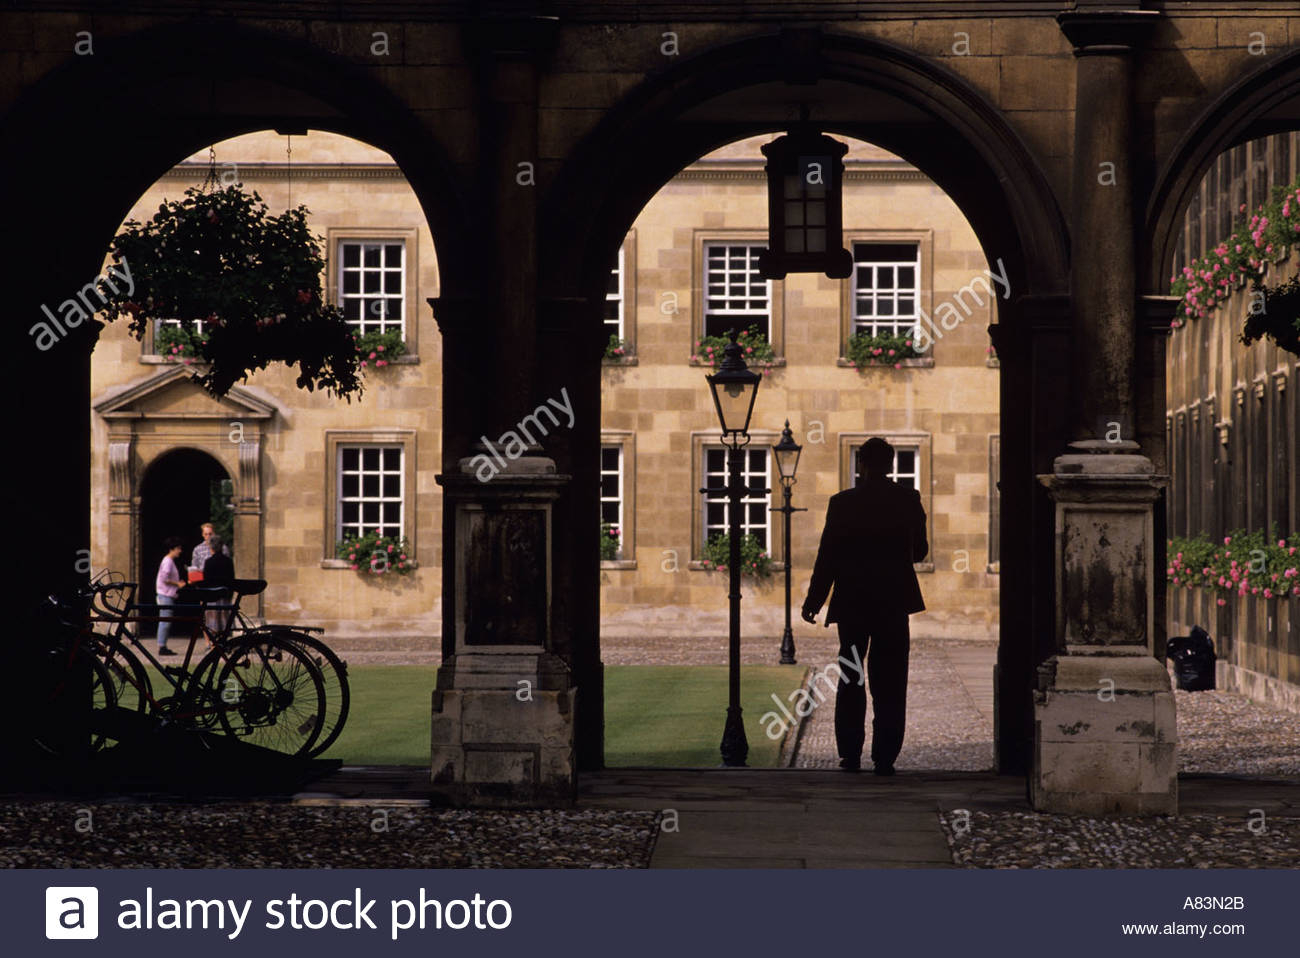 Student entering Peterhouse College, Cambridge, Uk - Stock Image